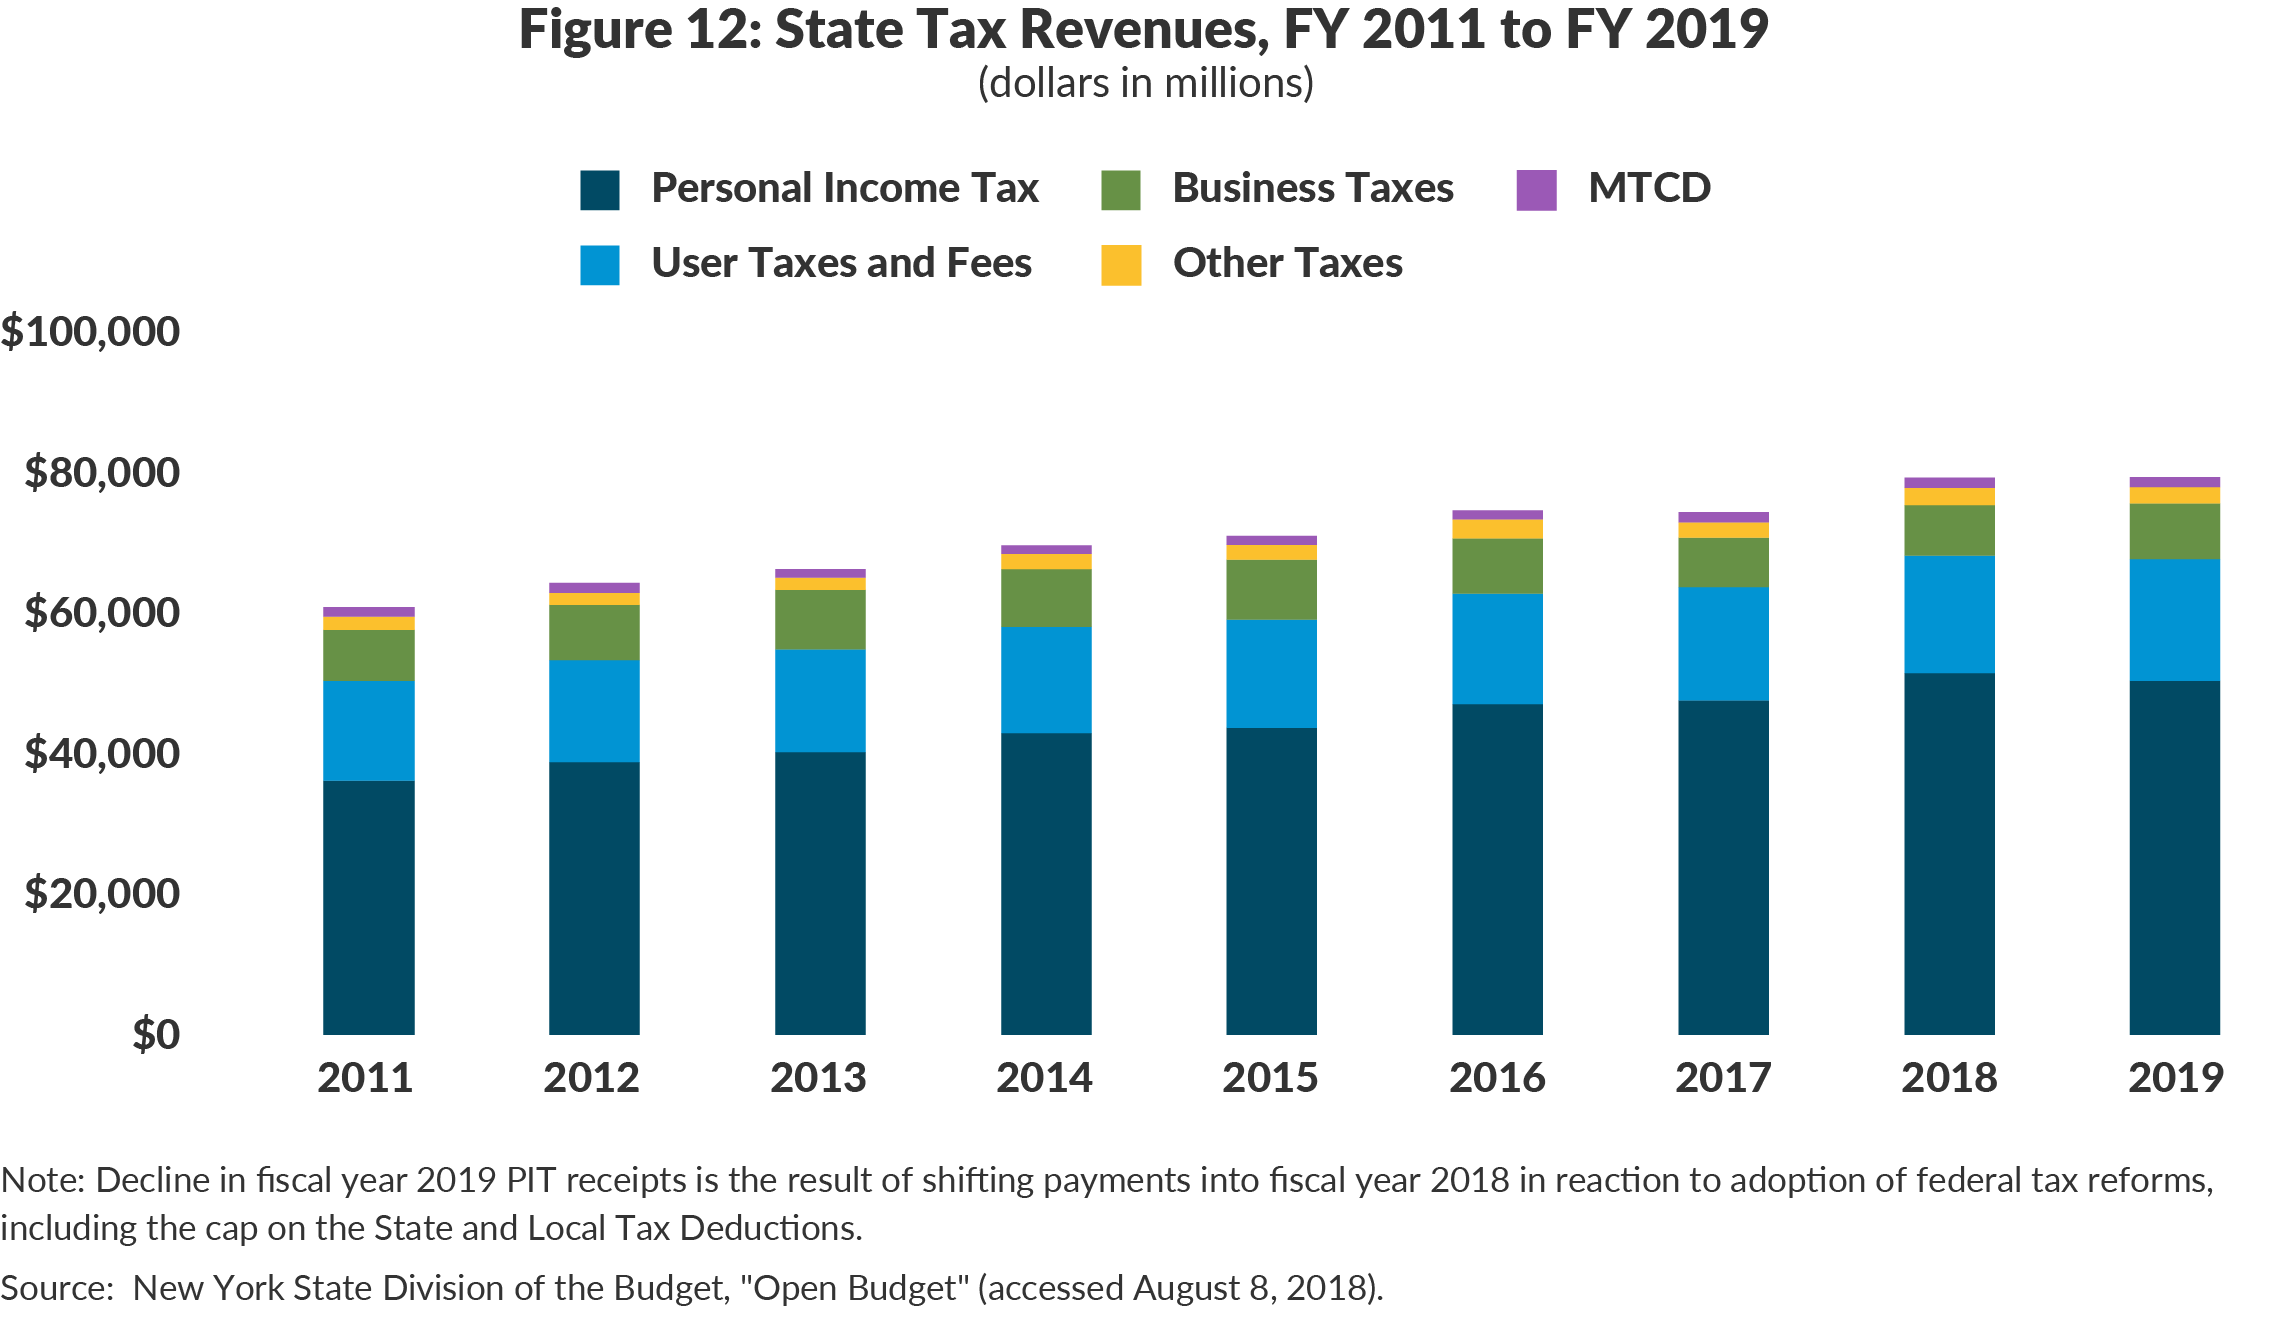 Figure 12: State Tax Revenues, FY 2011 to FY 2019